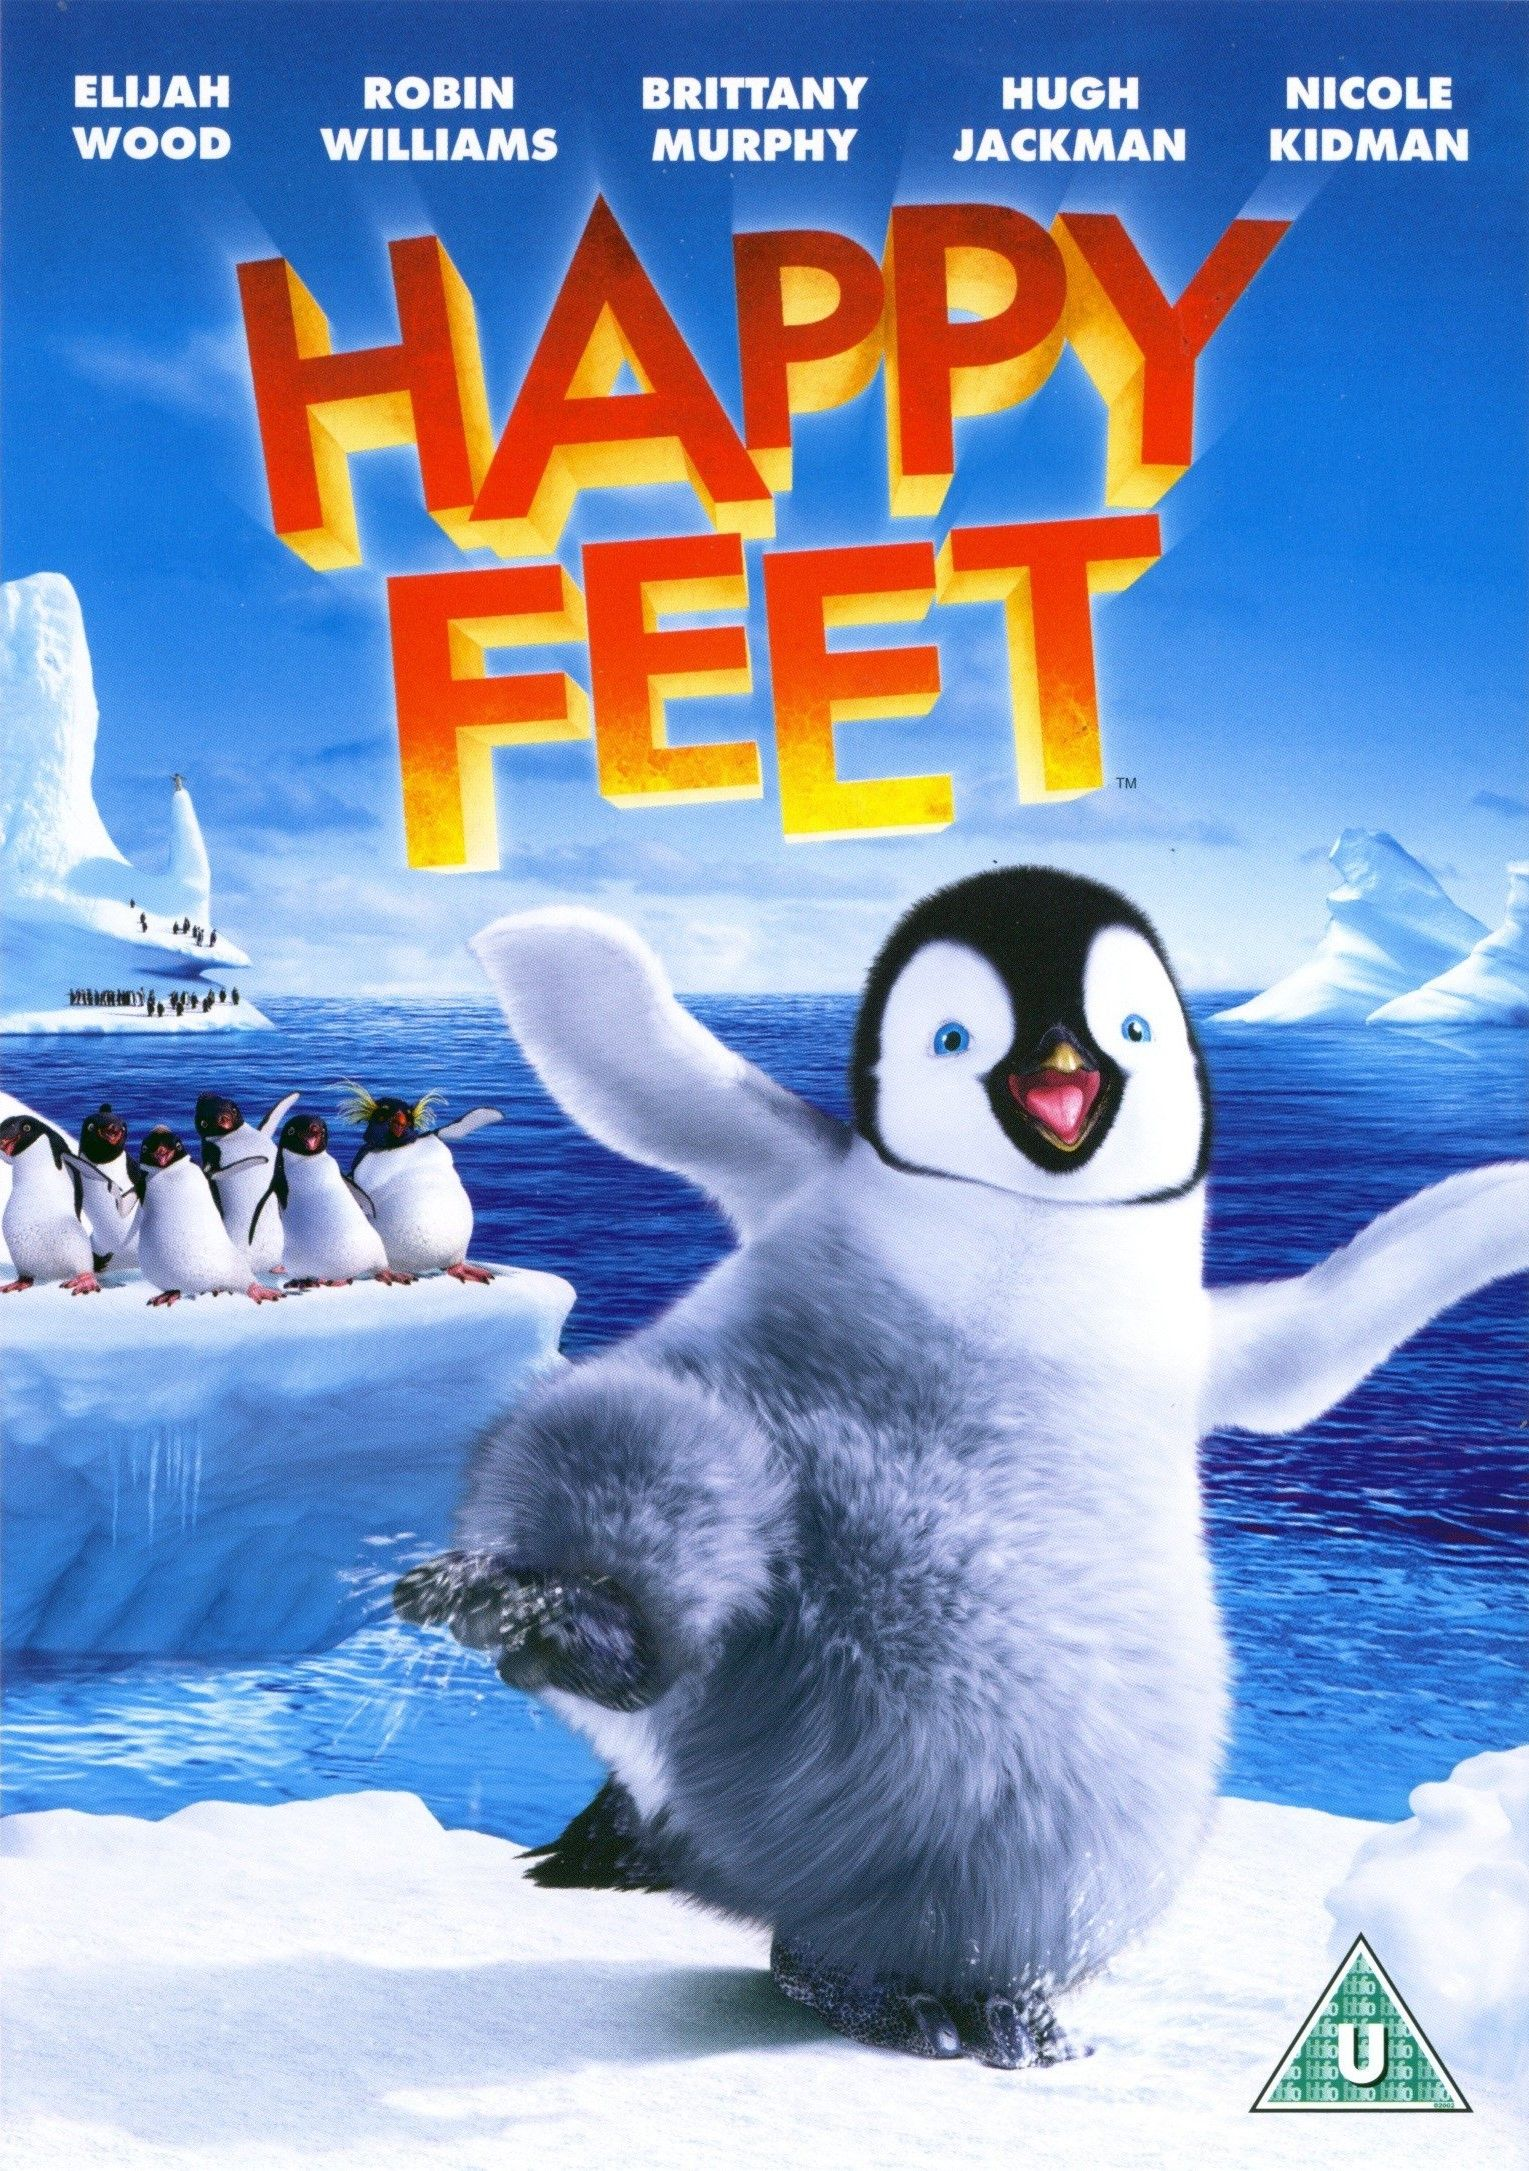 Pin by Aaron Viles on Movies Happy feet, Full movies